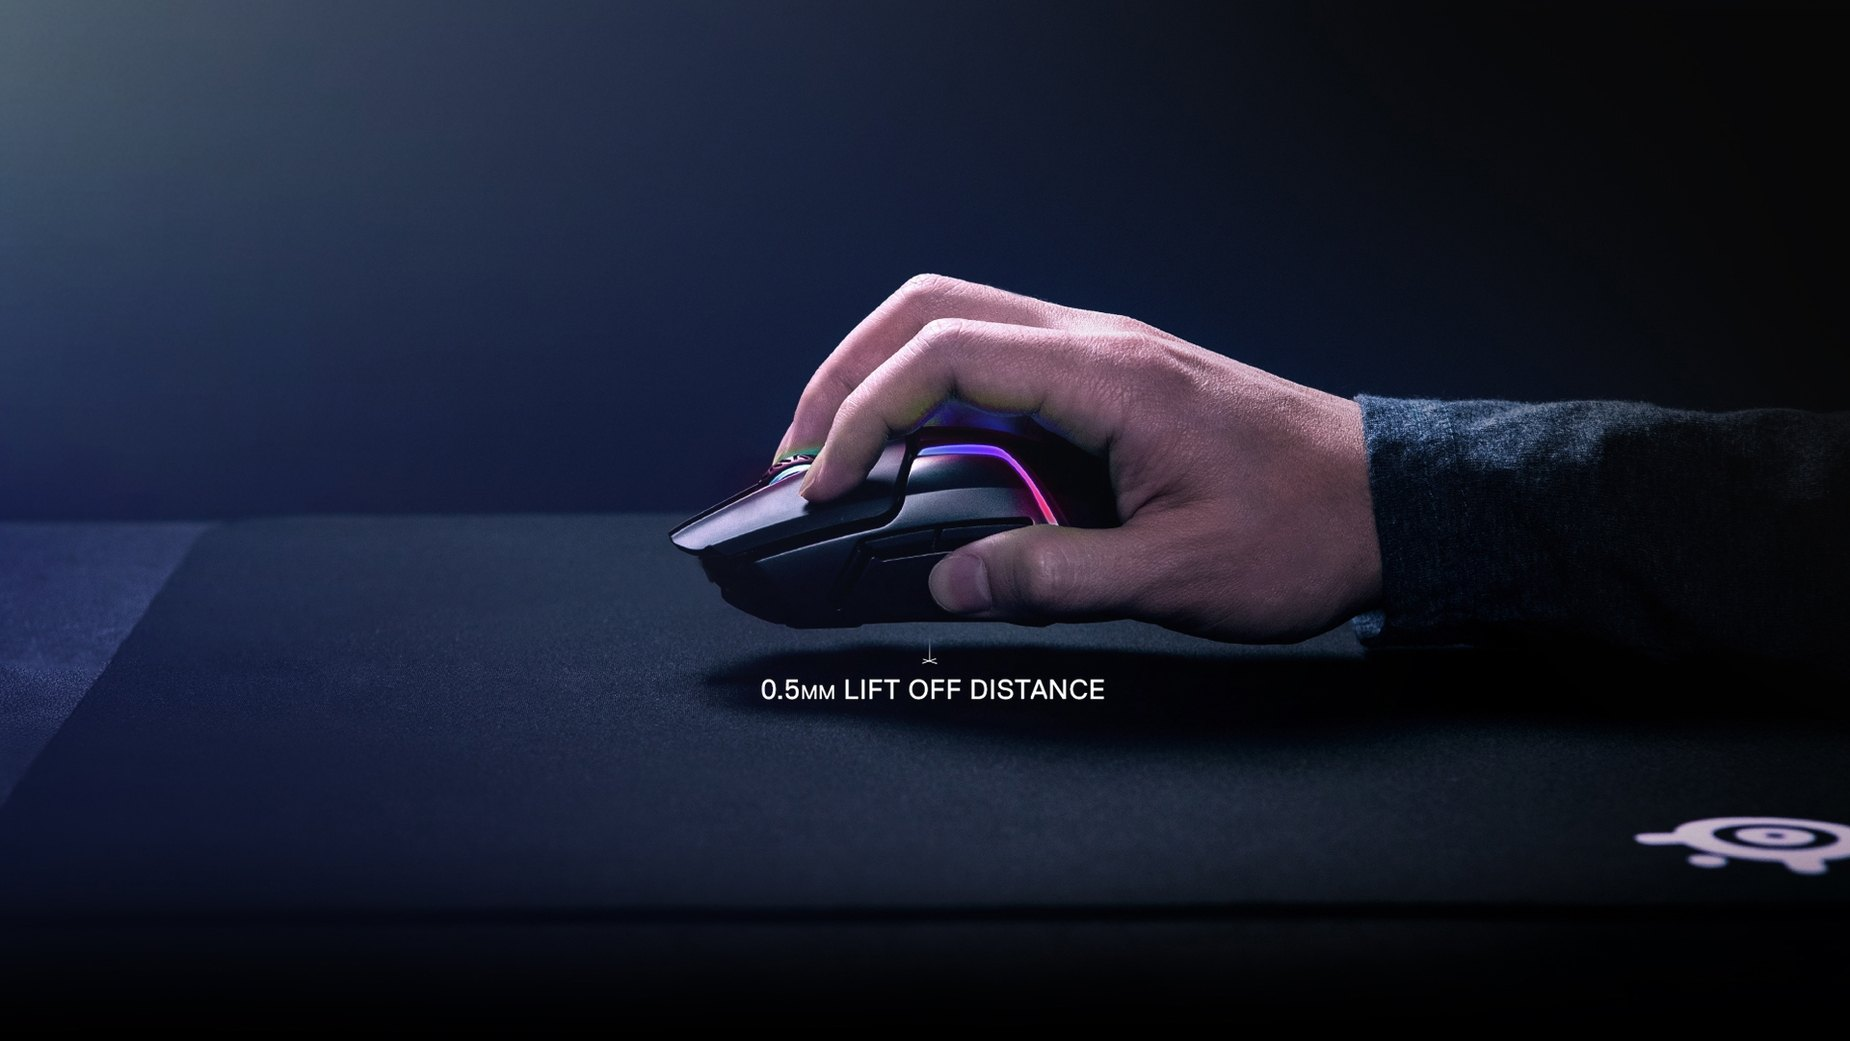 Hand holding Rival 650 Wireless above table to show 0.5mm lift off distance